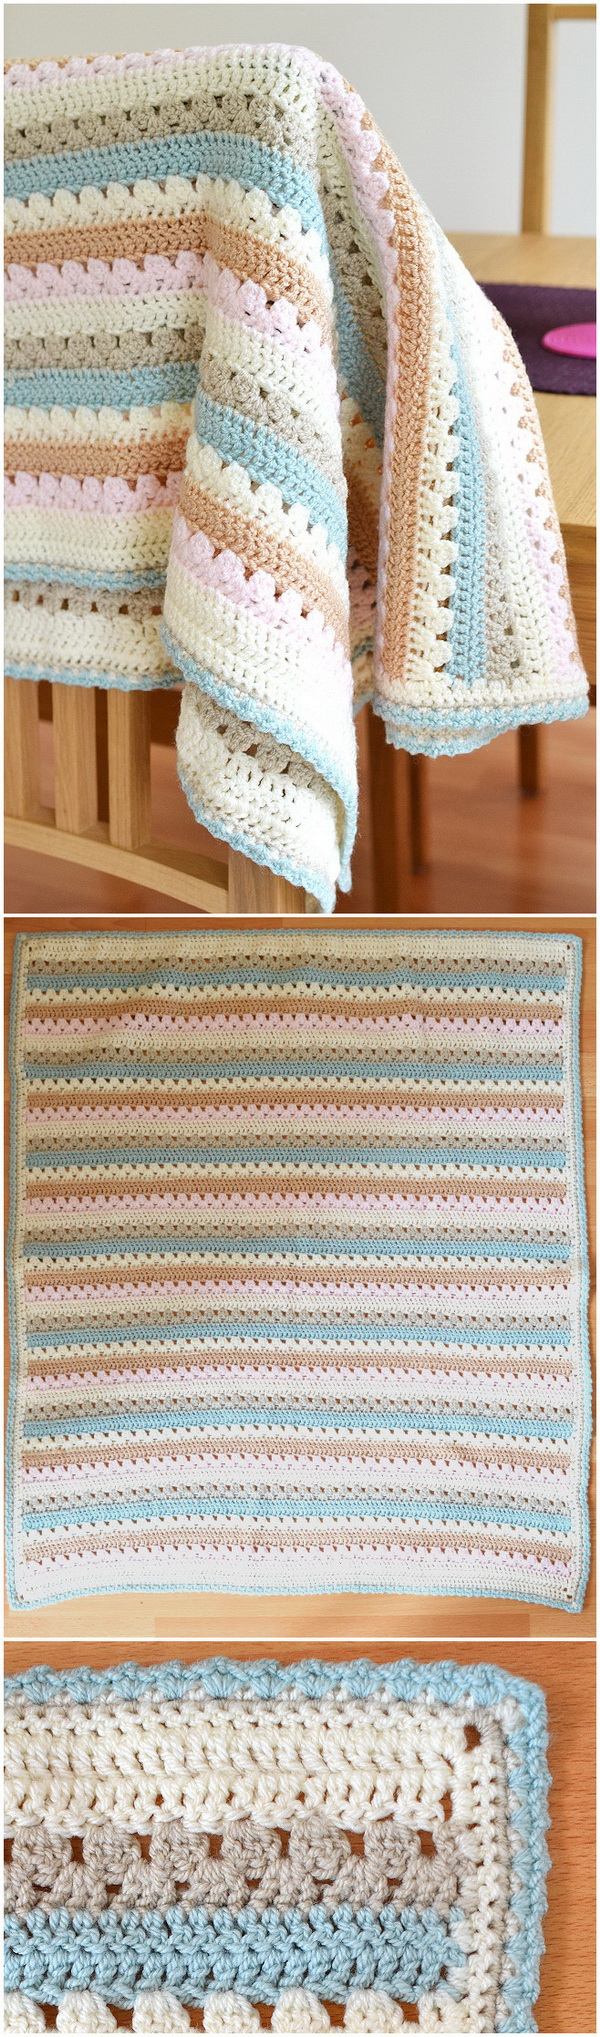 Quick And Easy Crochet Blanket Patterns For Beginners: Making A Cosy Stripe Blanket.